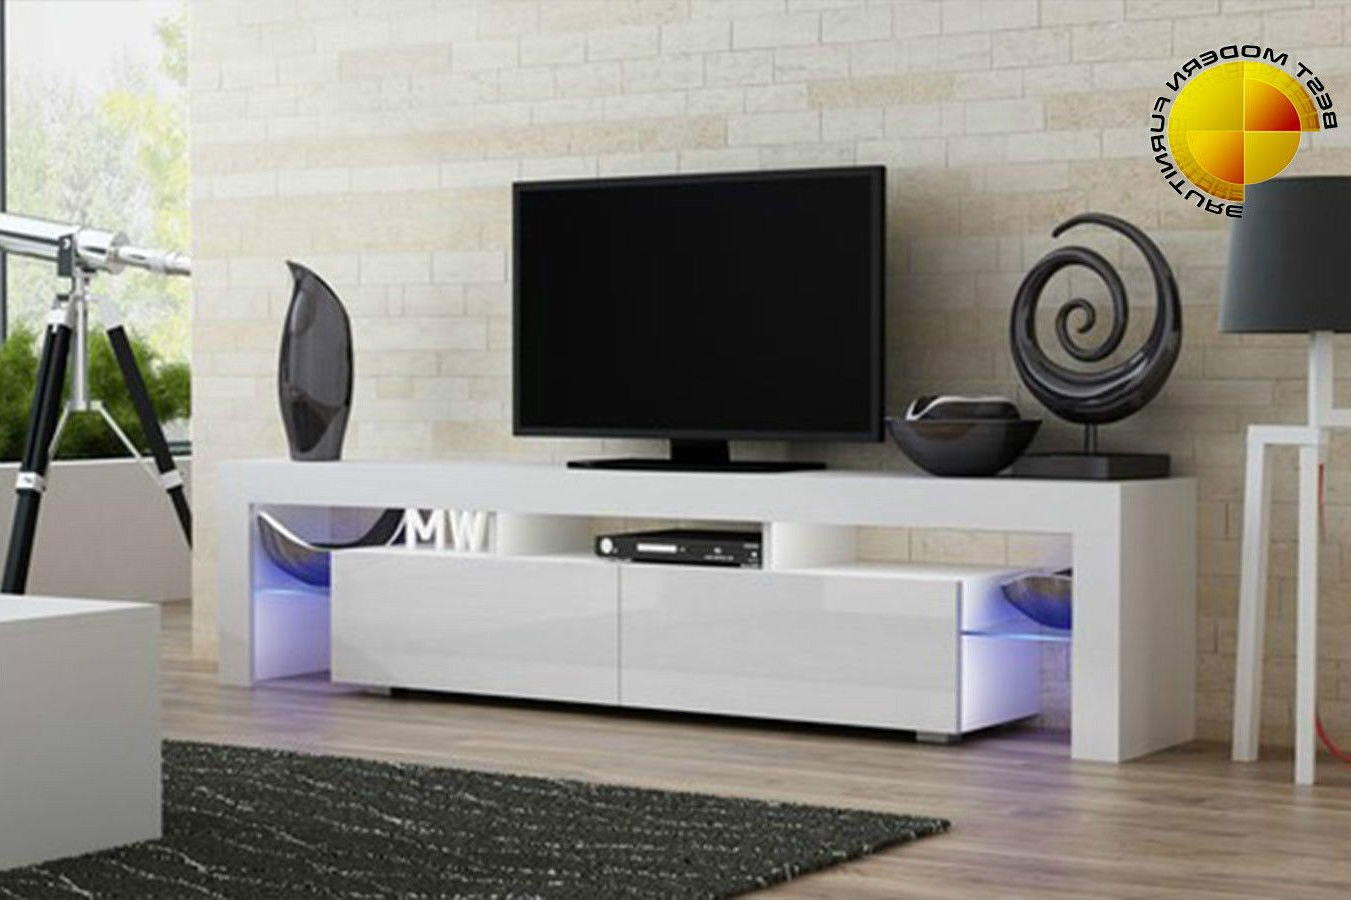 Modern Tv Stand 200Cm High Gloss Cabinet Free Rgb Led Lights Black Regarding 2017 White Contemporary Tv Stands (View 8 of 20)